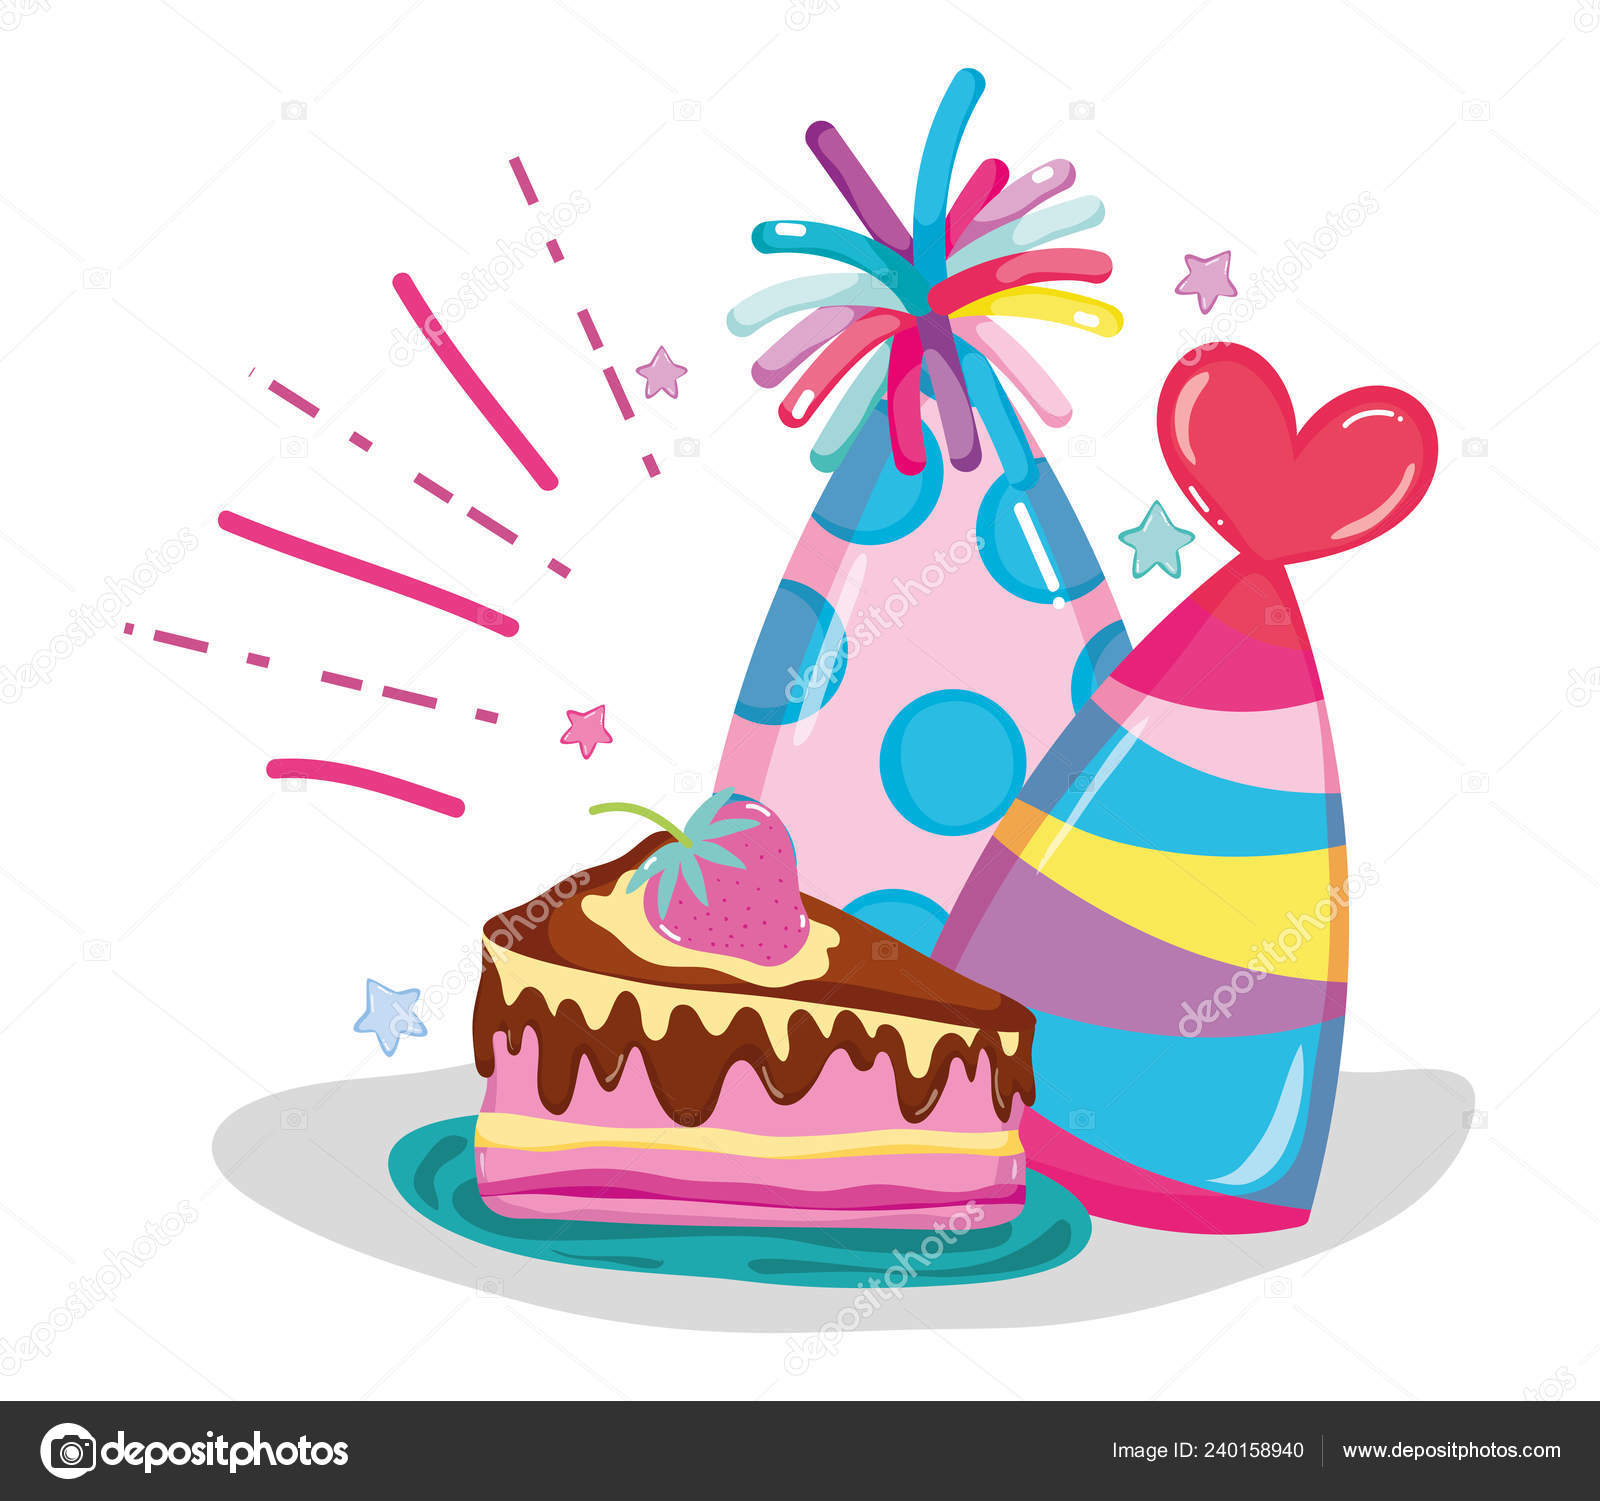 Happy Birthday Cake Hats Cartoons Vector Illustration Graphic Design Stock